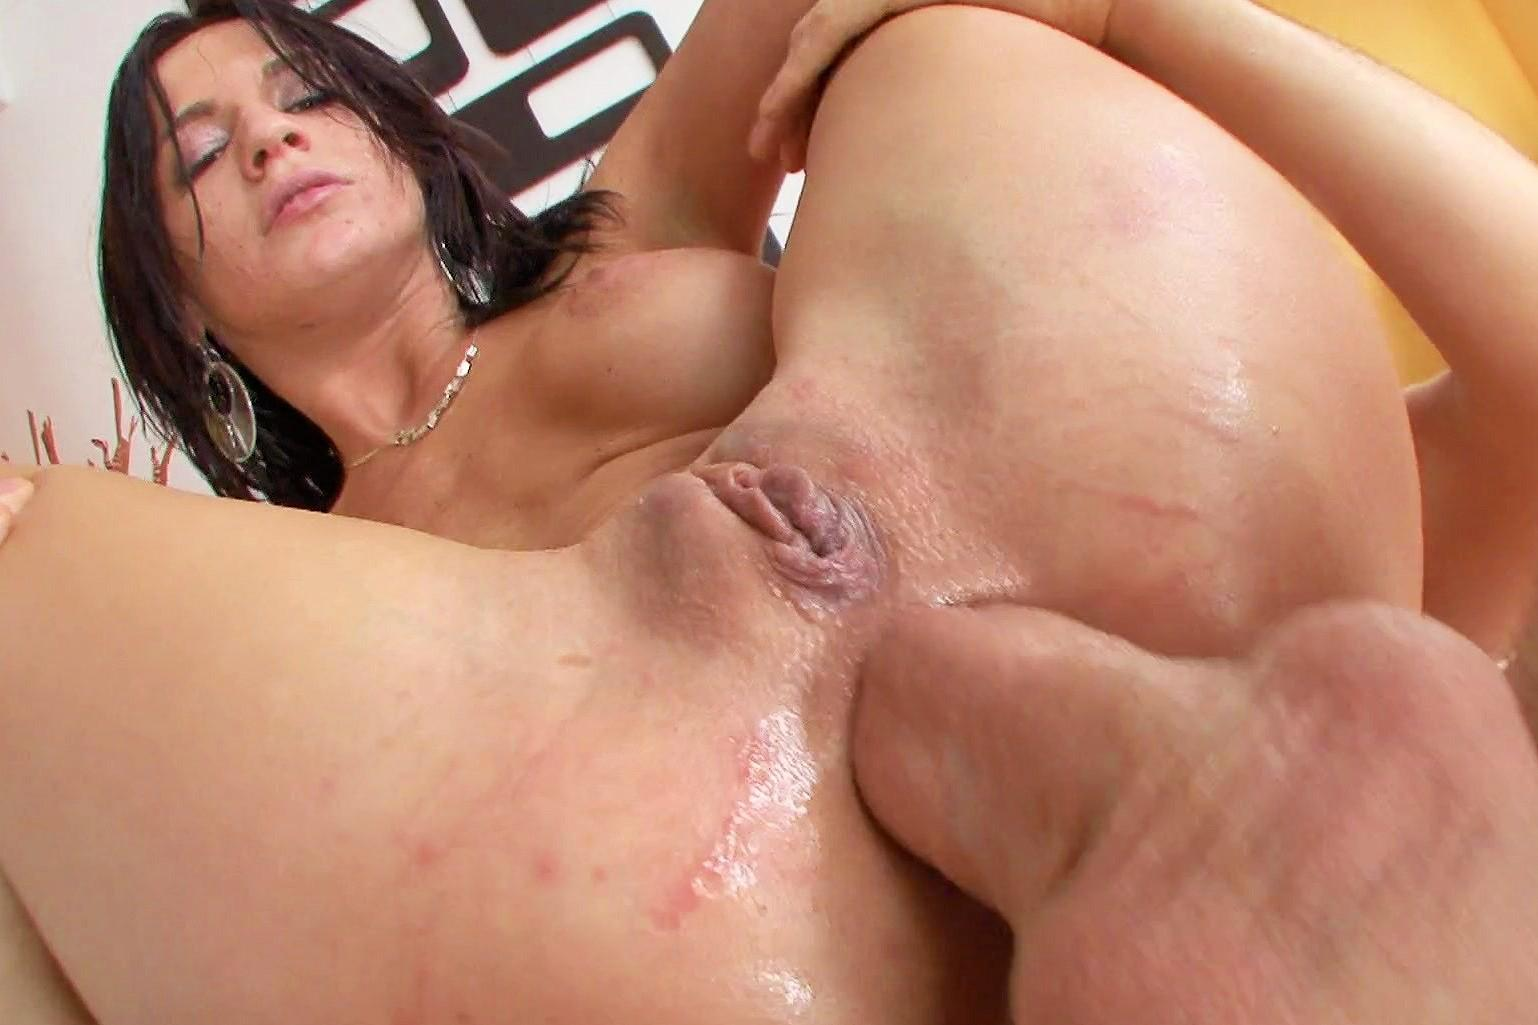 image Huge boobs bouncing amp getting fucked for cum